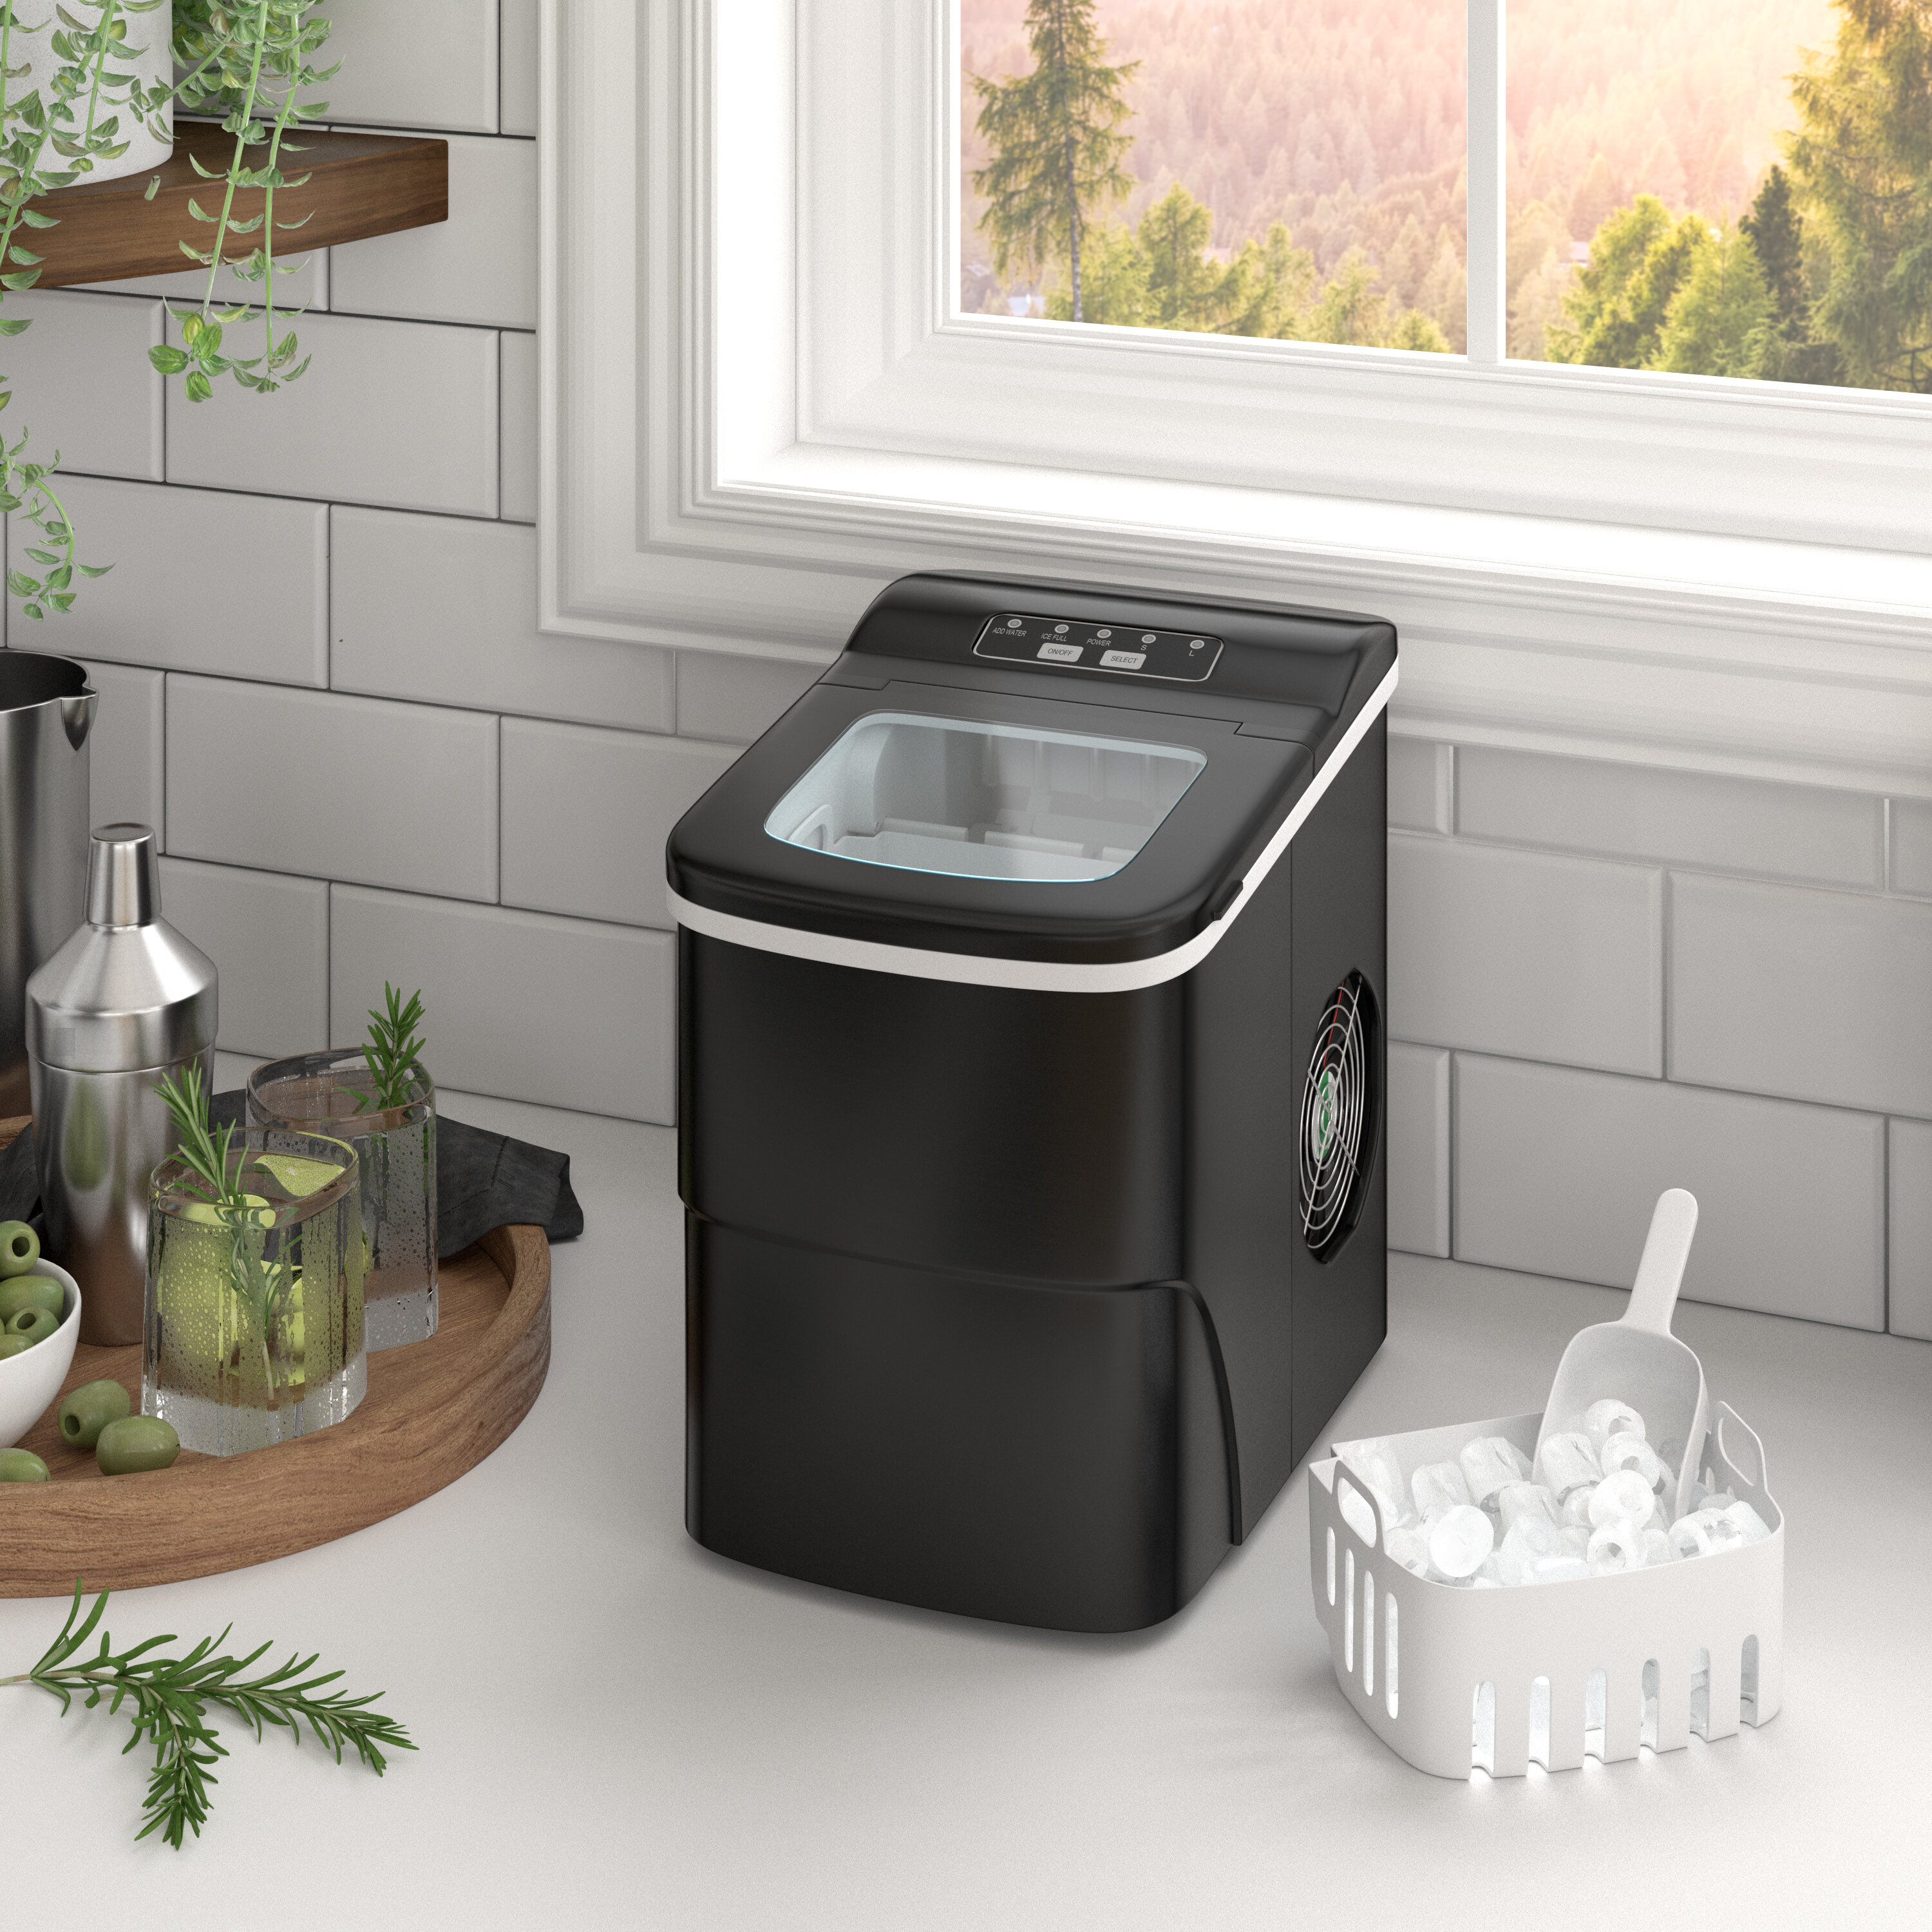 Prep Savour Countertop 26 Lb Daily Production Portable Clear Ice Maker Reviews Wayfair